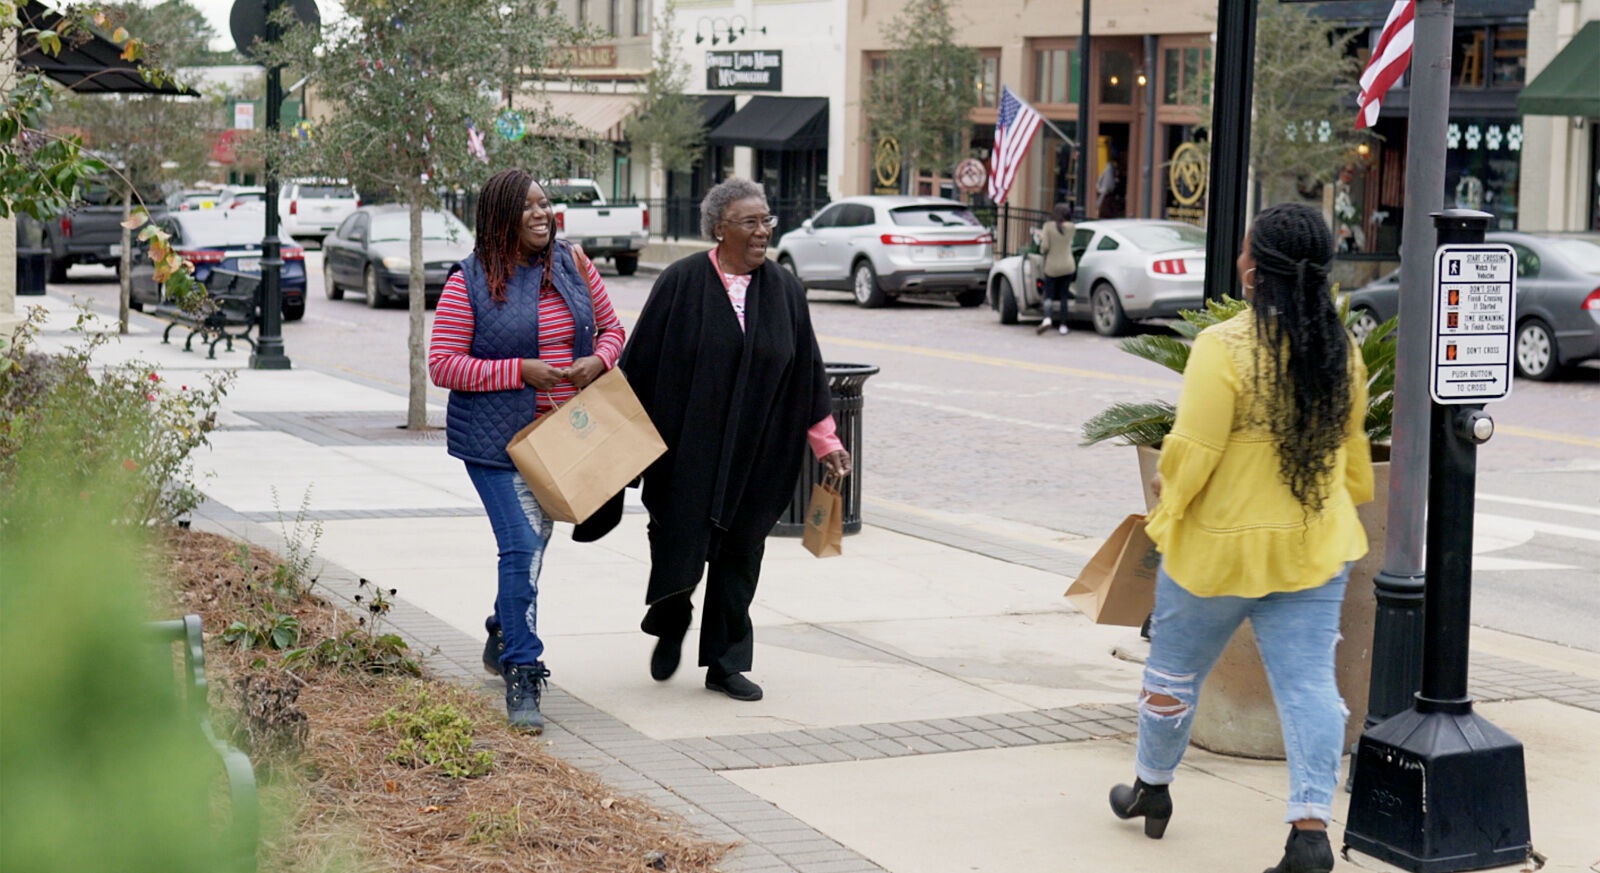 City to resume First Friday Sip and Shop in May